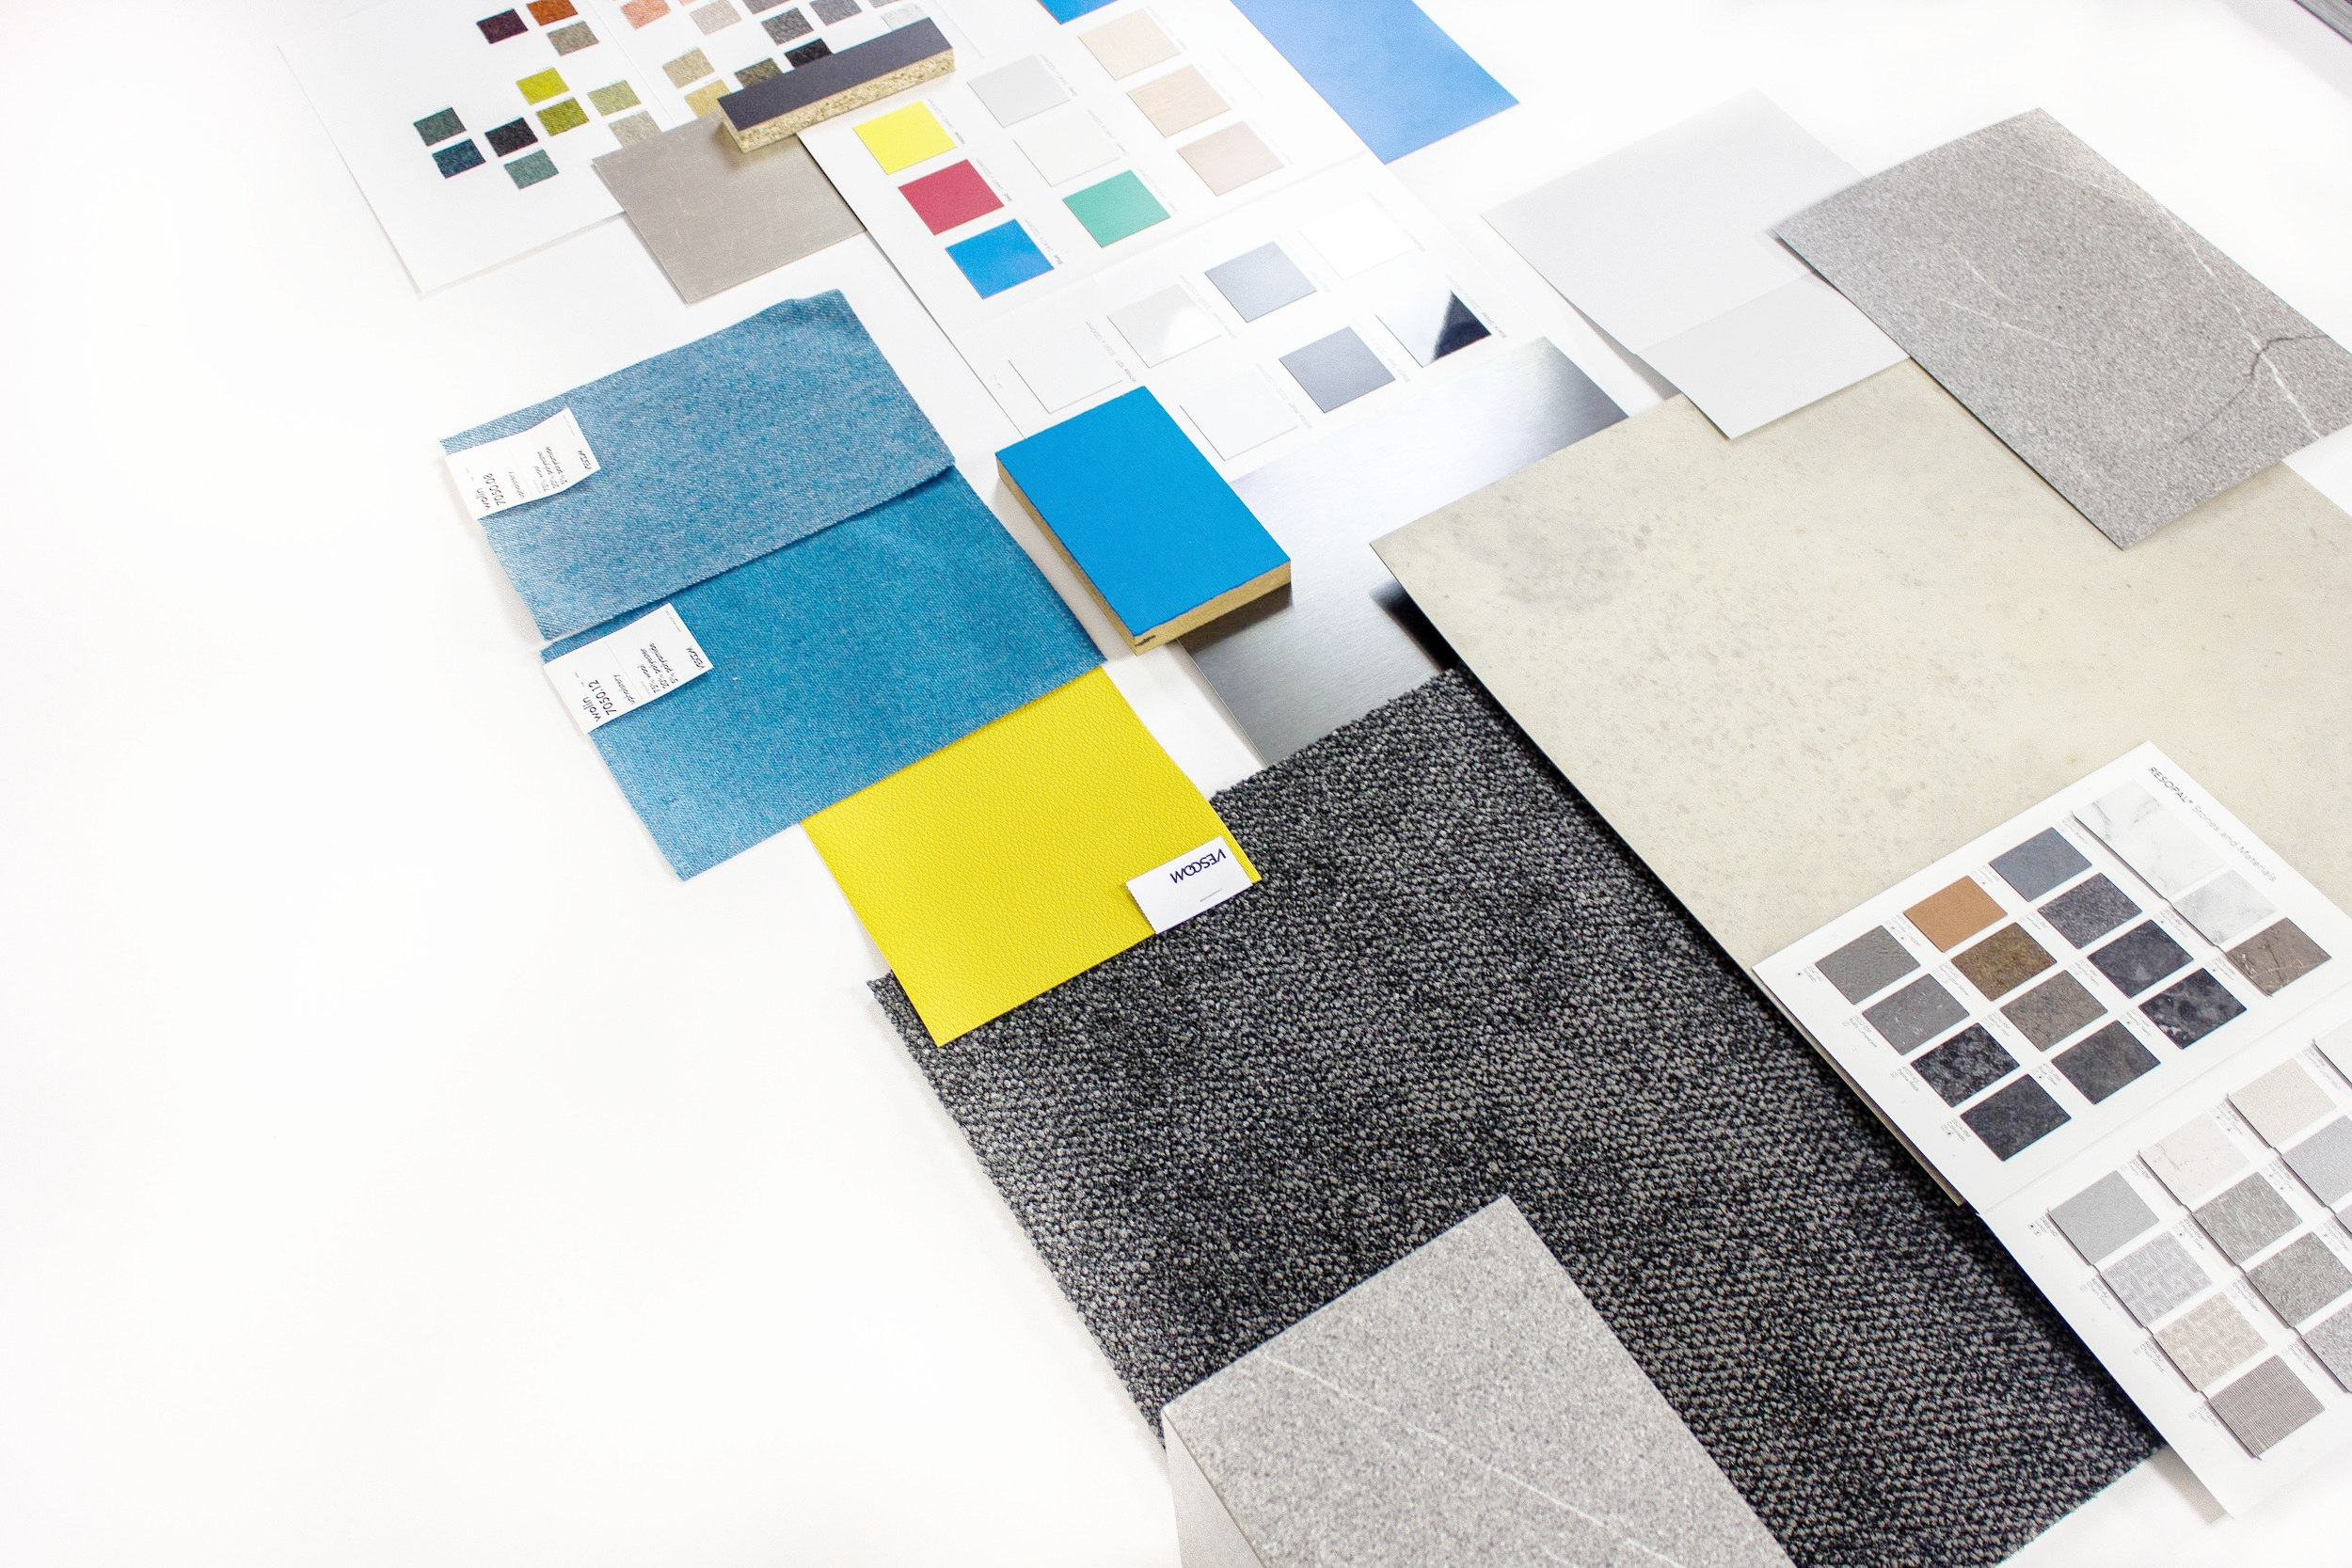 Interior Design - Following site meetings and production of existing plans we followed a thorough interior design process involving specification and design of all FF&E elements.